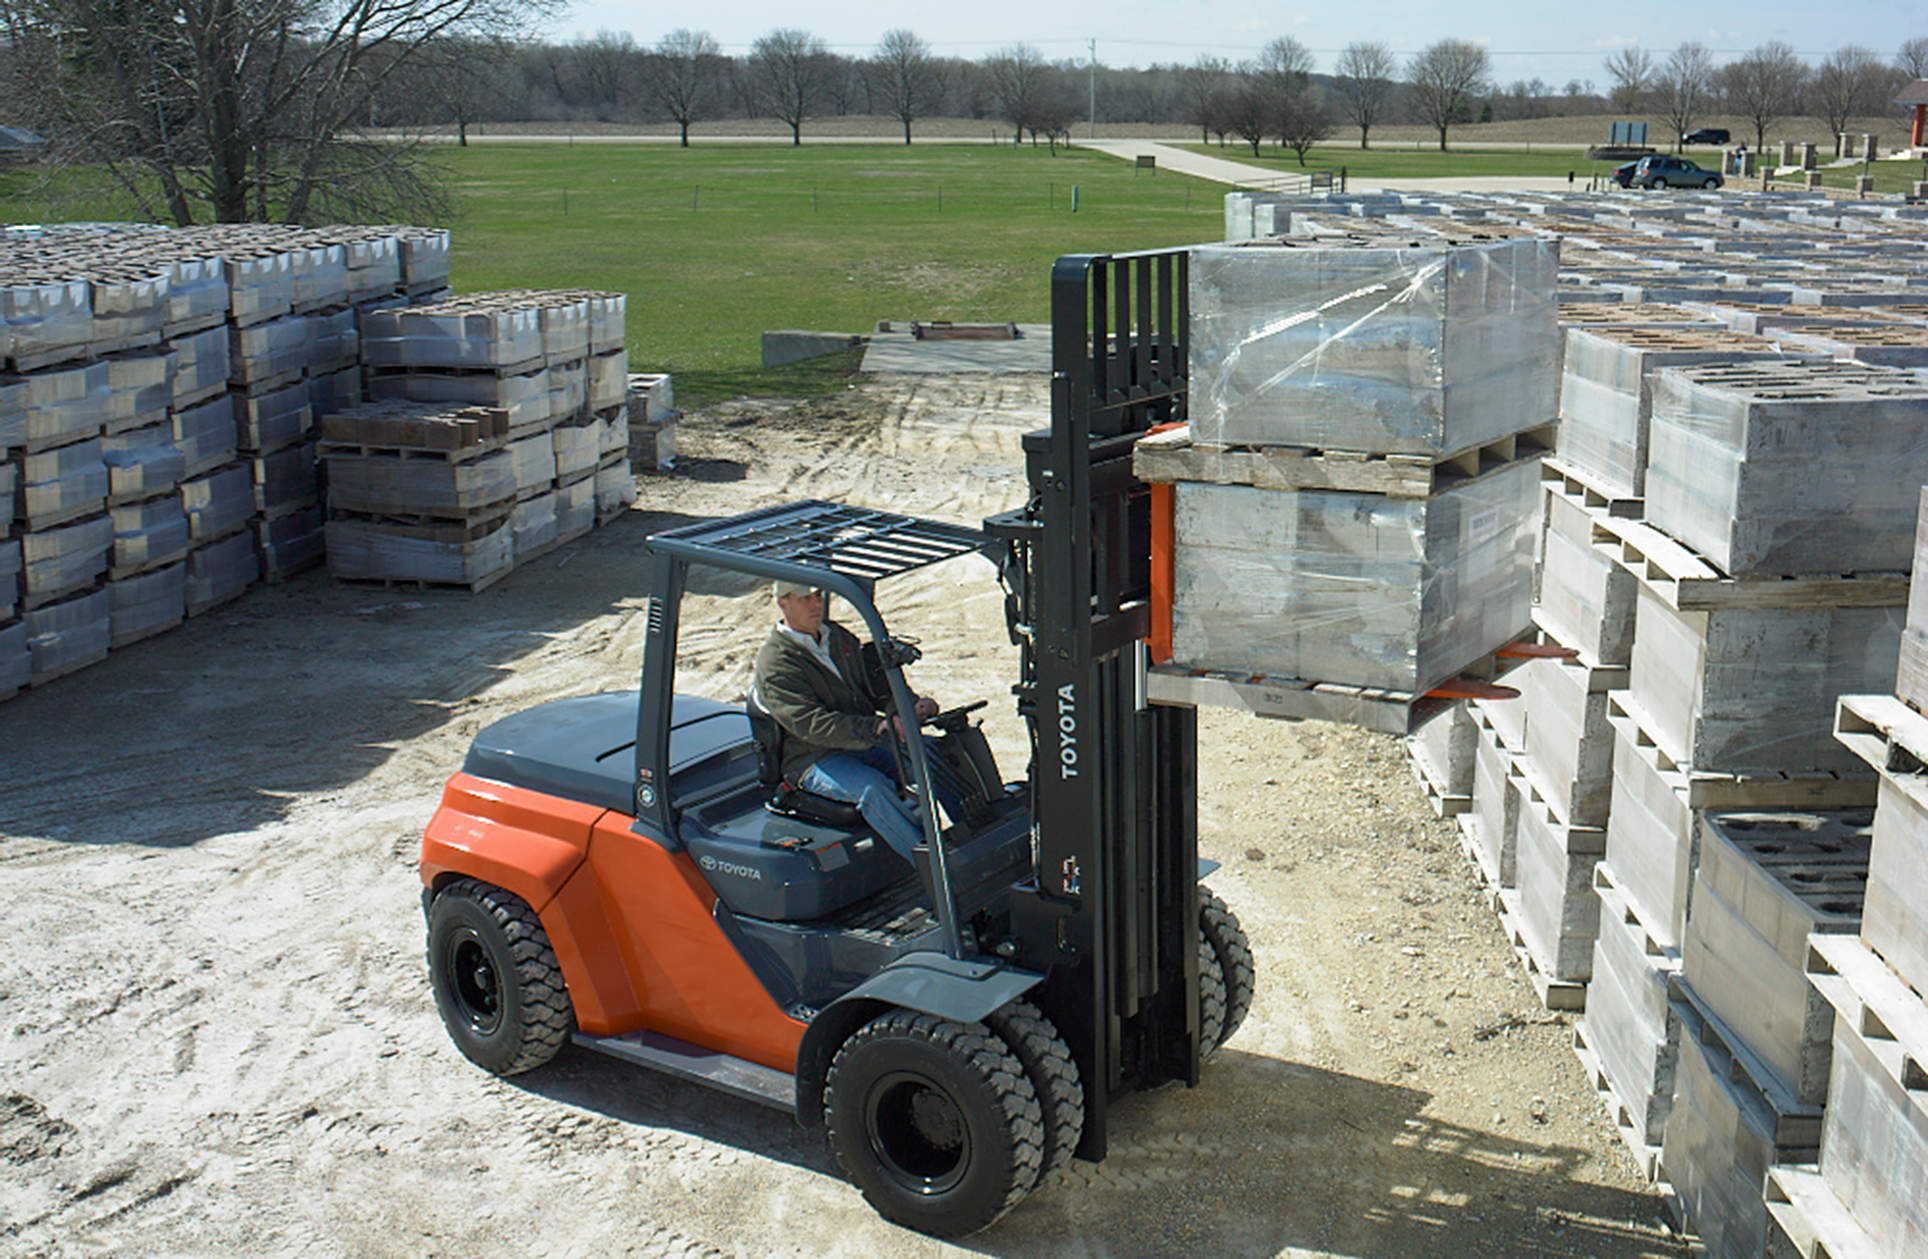 Toyota's Large IC Pneumatic forklift for moving heavy loads outdoors.